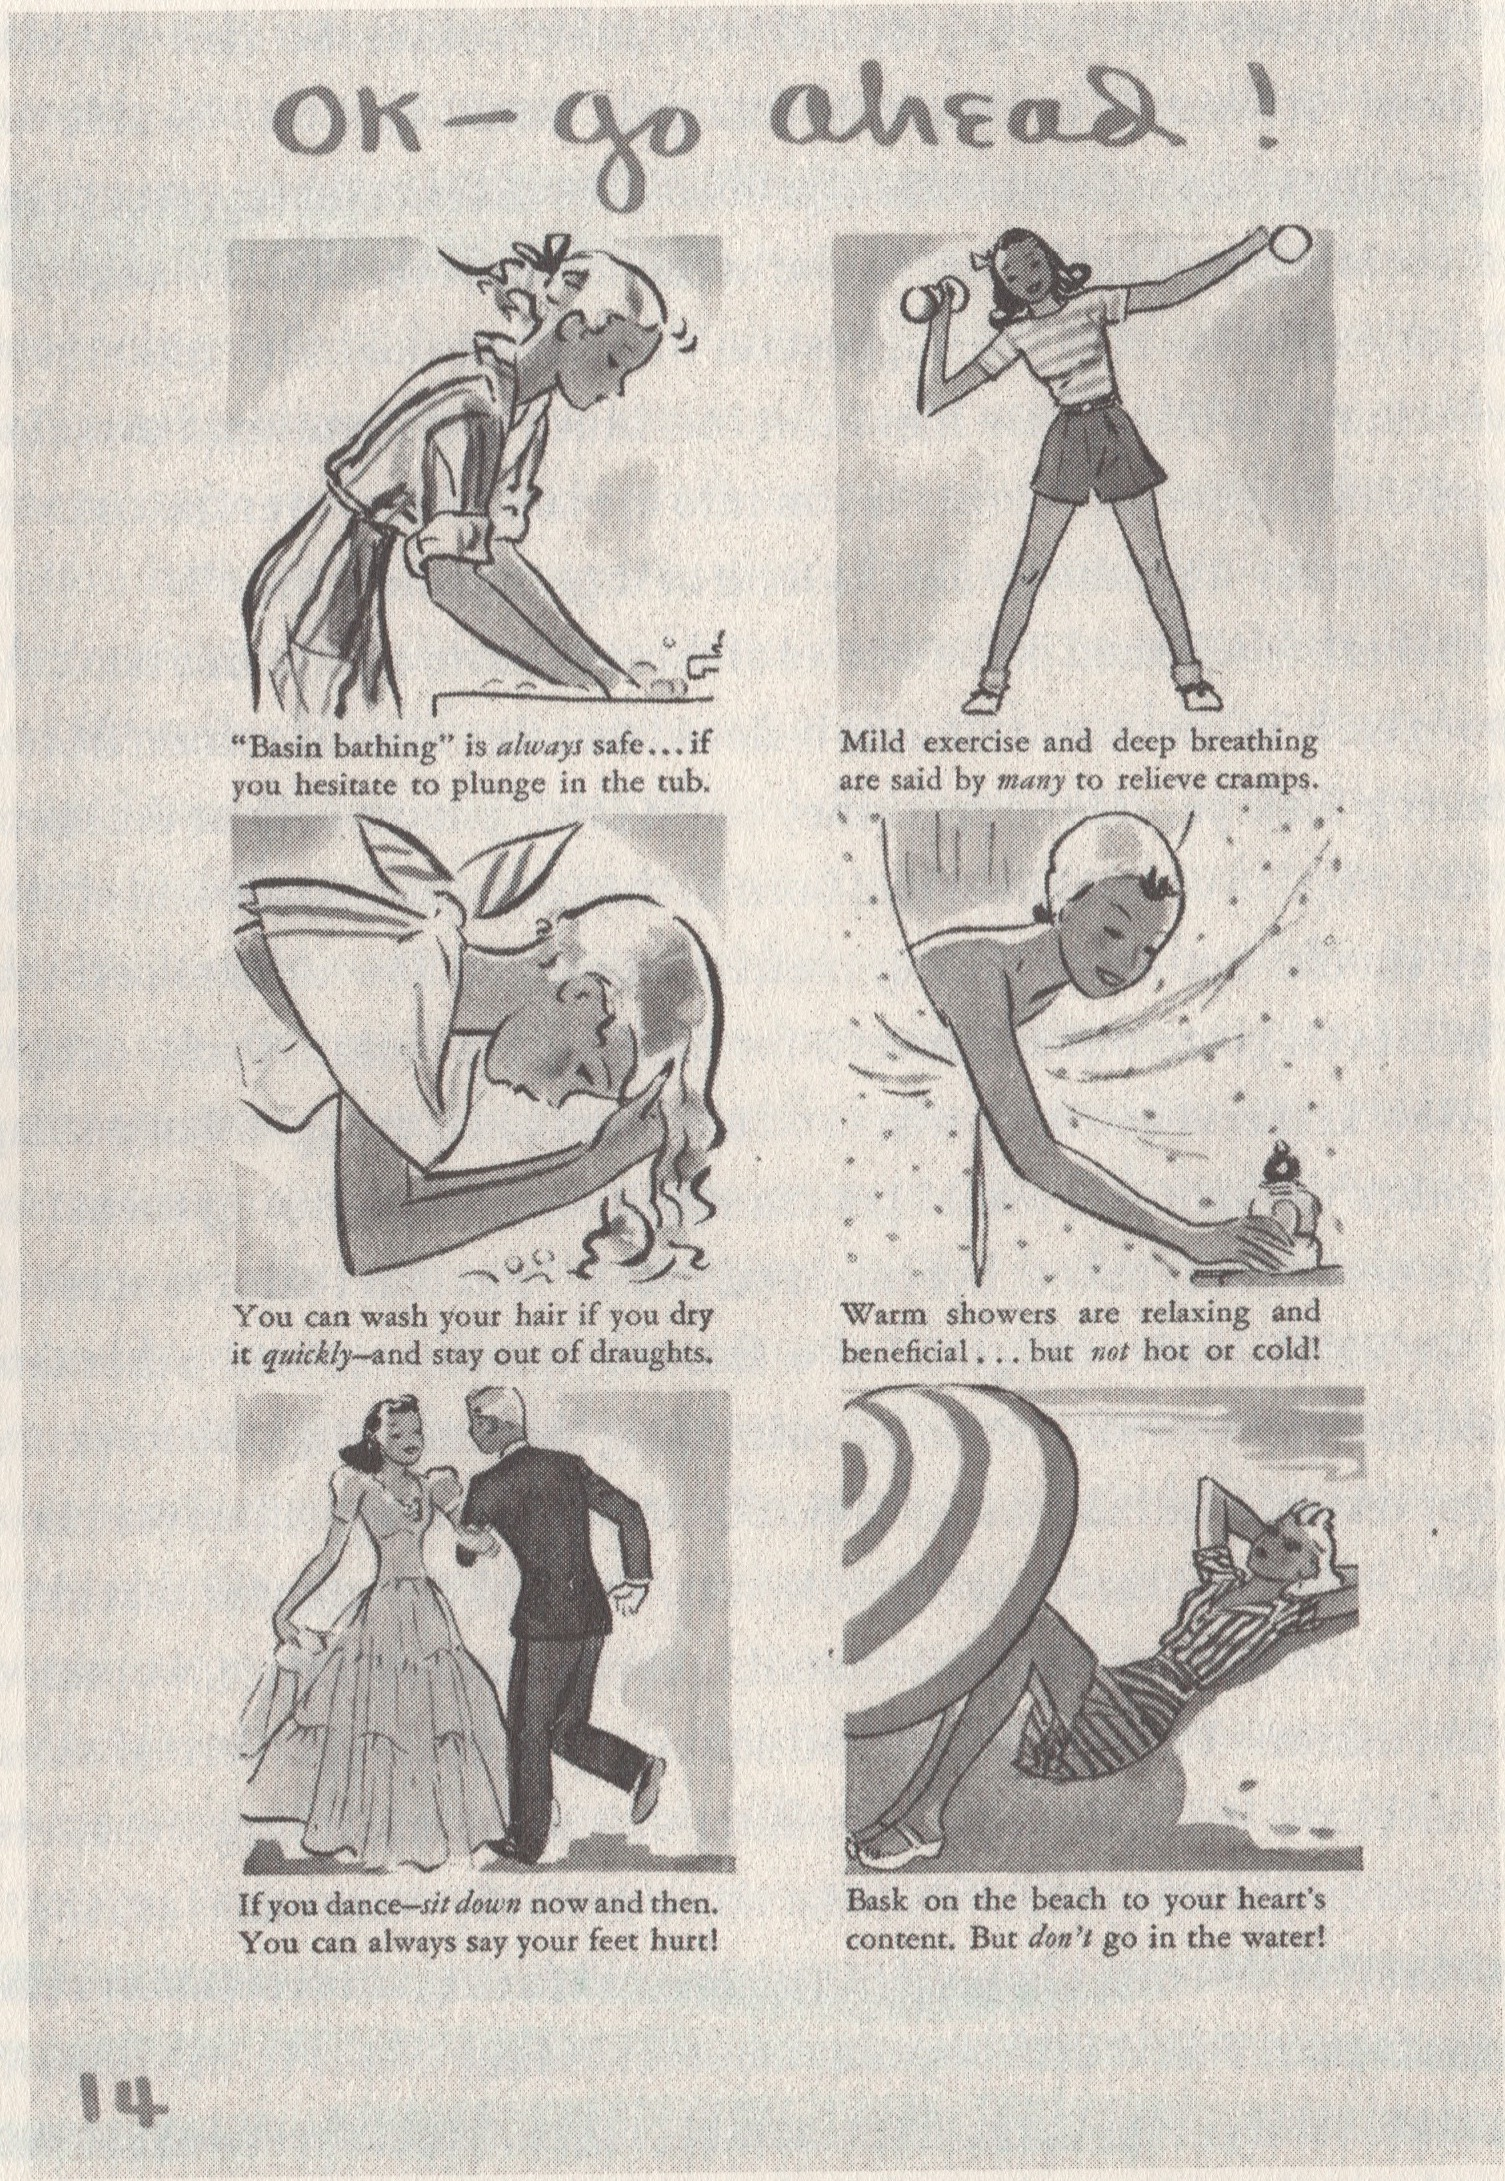 """Menstrual dos from """"As One Girl to Another,"""" an educational pamphlet for girls published by Kimberly-Clark, 1940 (courtesy of Duke University Rare Book, Manuscript and Special Collections Library, Durham, North Carolina)"""